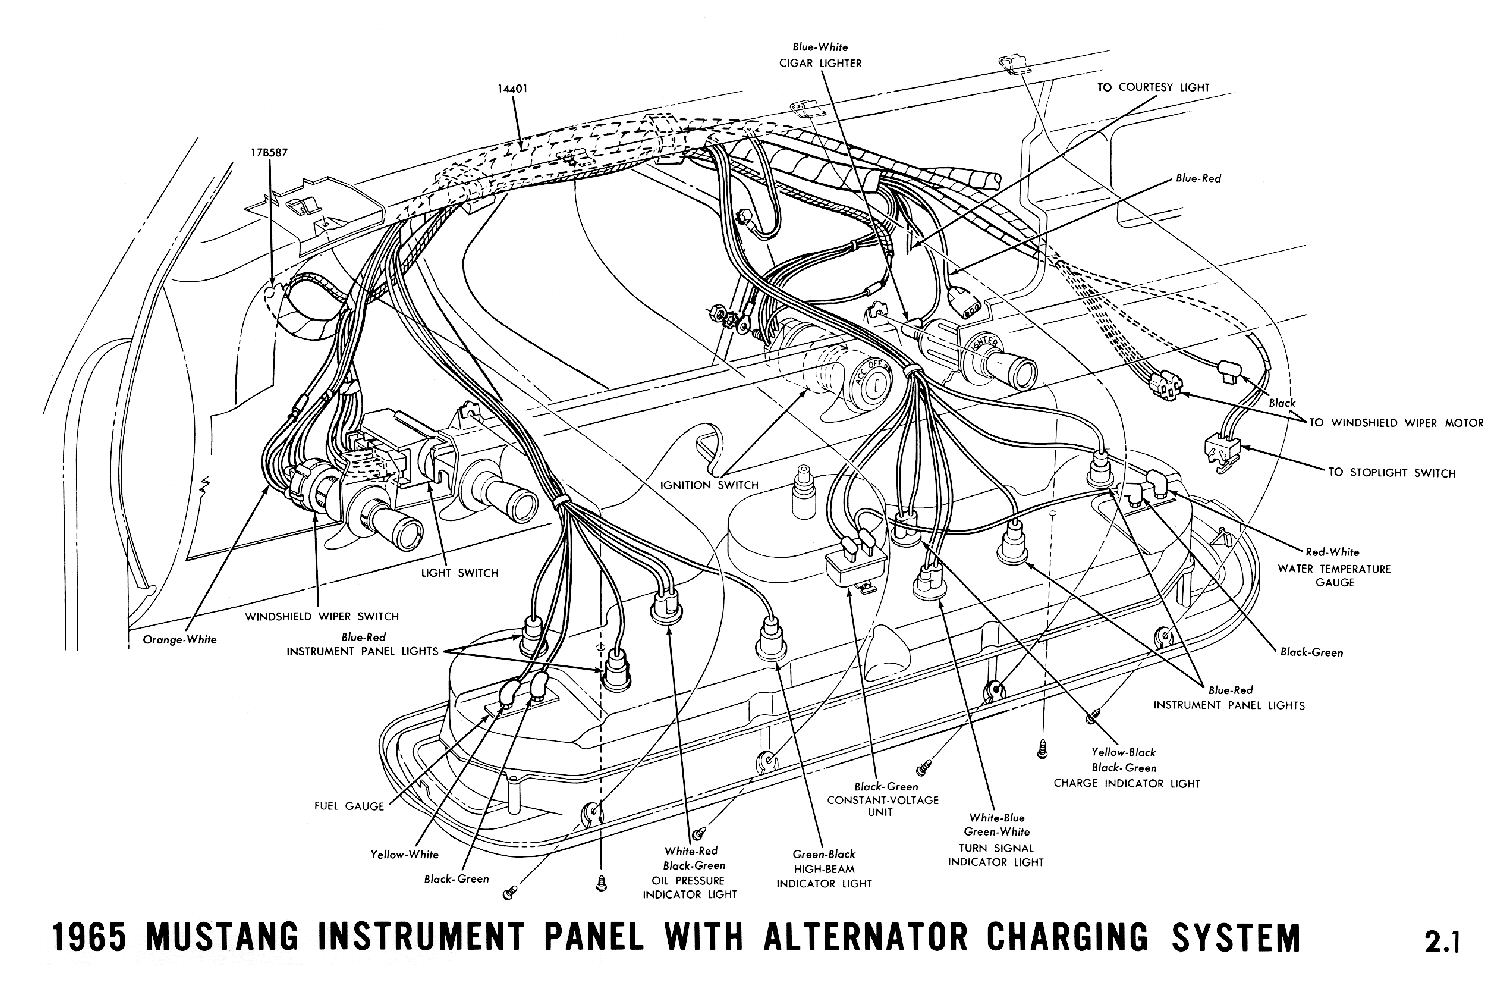 1965a 1965 mustang wiring diagrams average joe restoration 65 mustang tail light wiring diagram at crackthecode.co